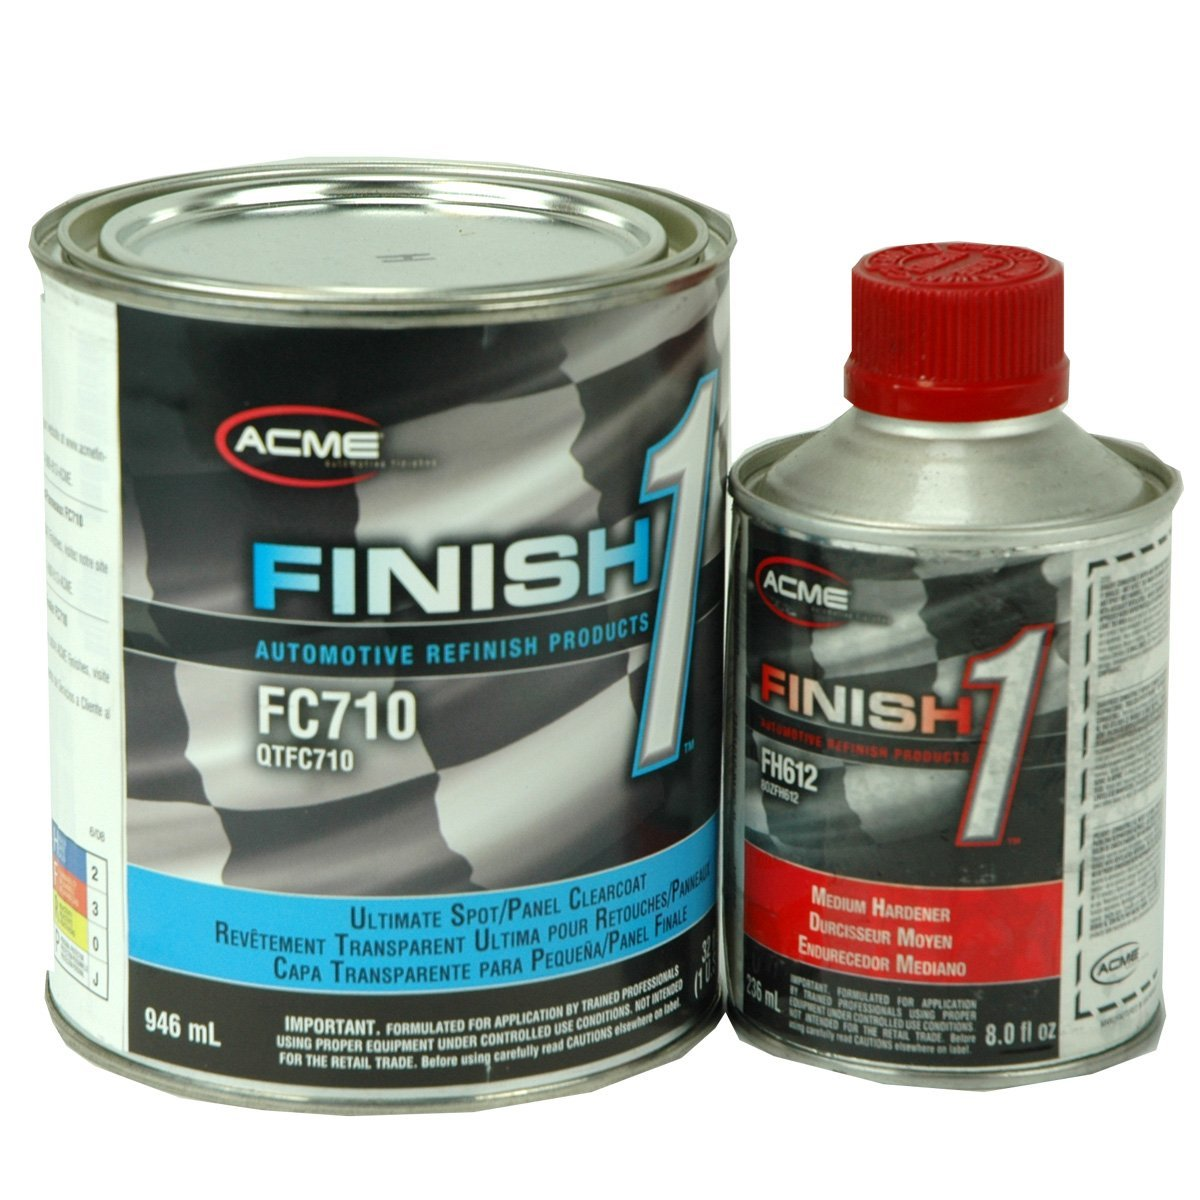 Finish 1 2K Urethane Automotive Clear Coat: 32 oz. Quart Clear Coat + 8 oz. Activator